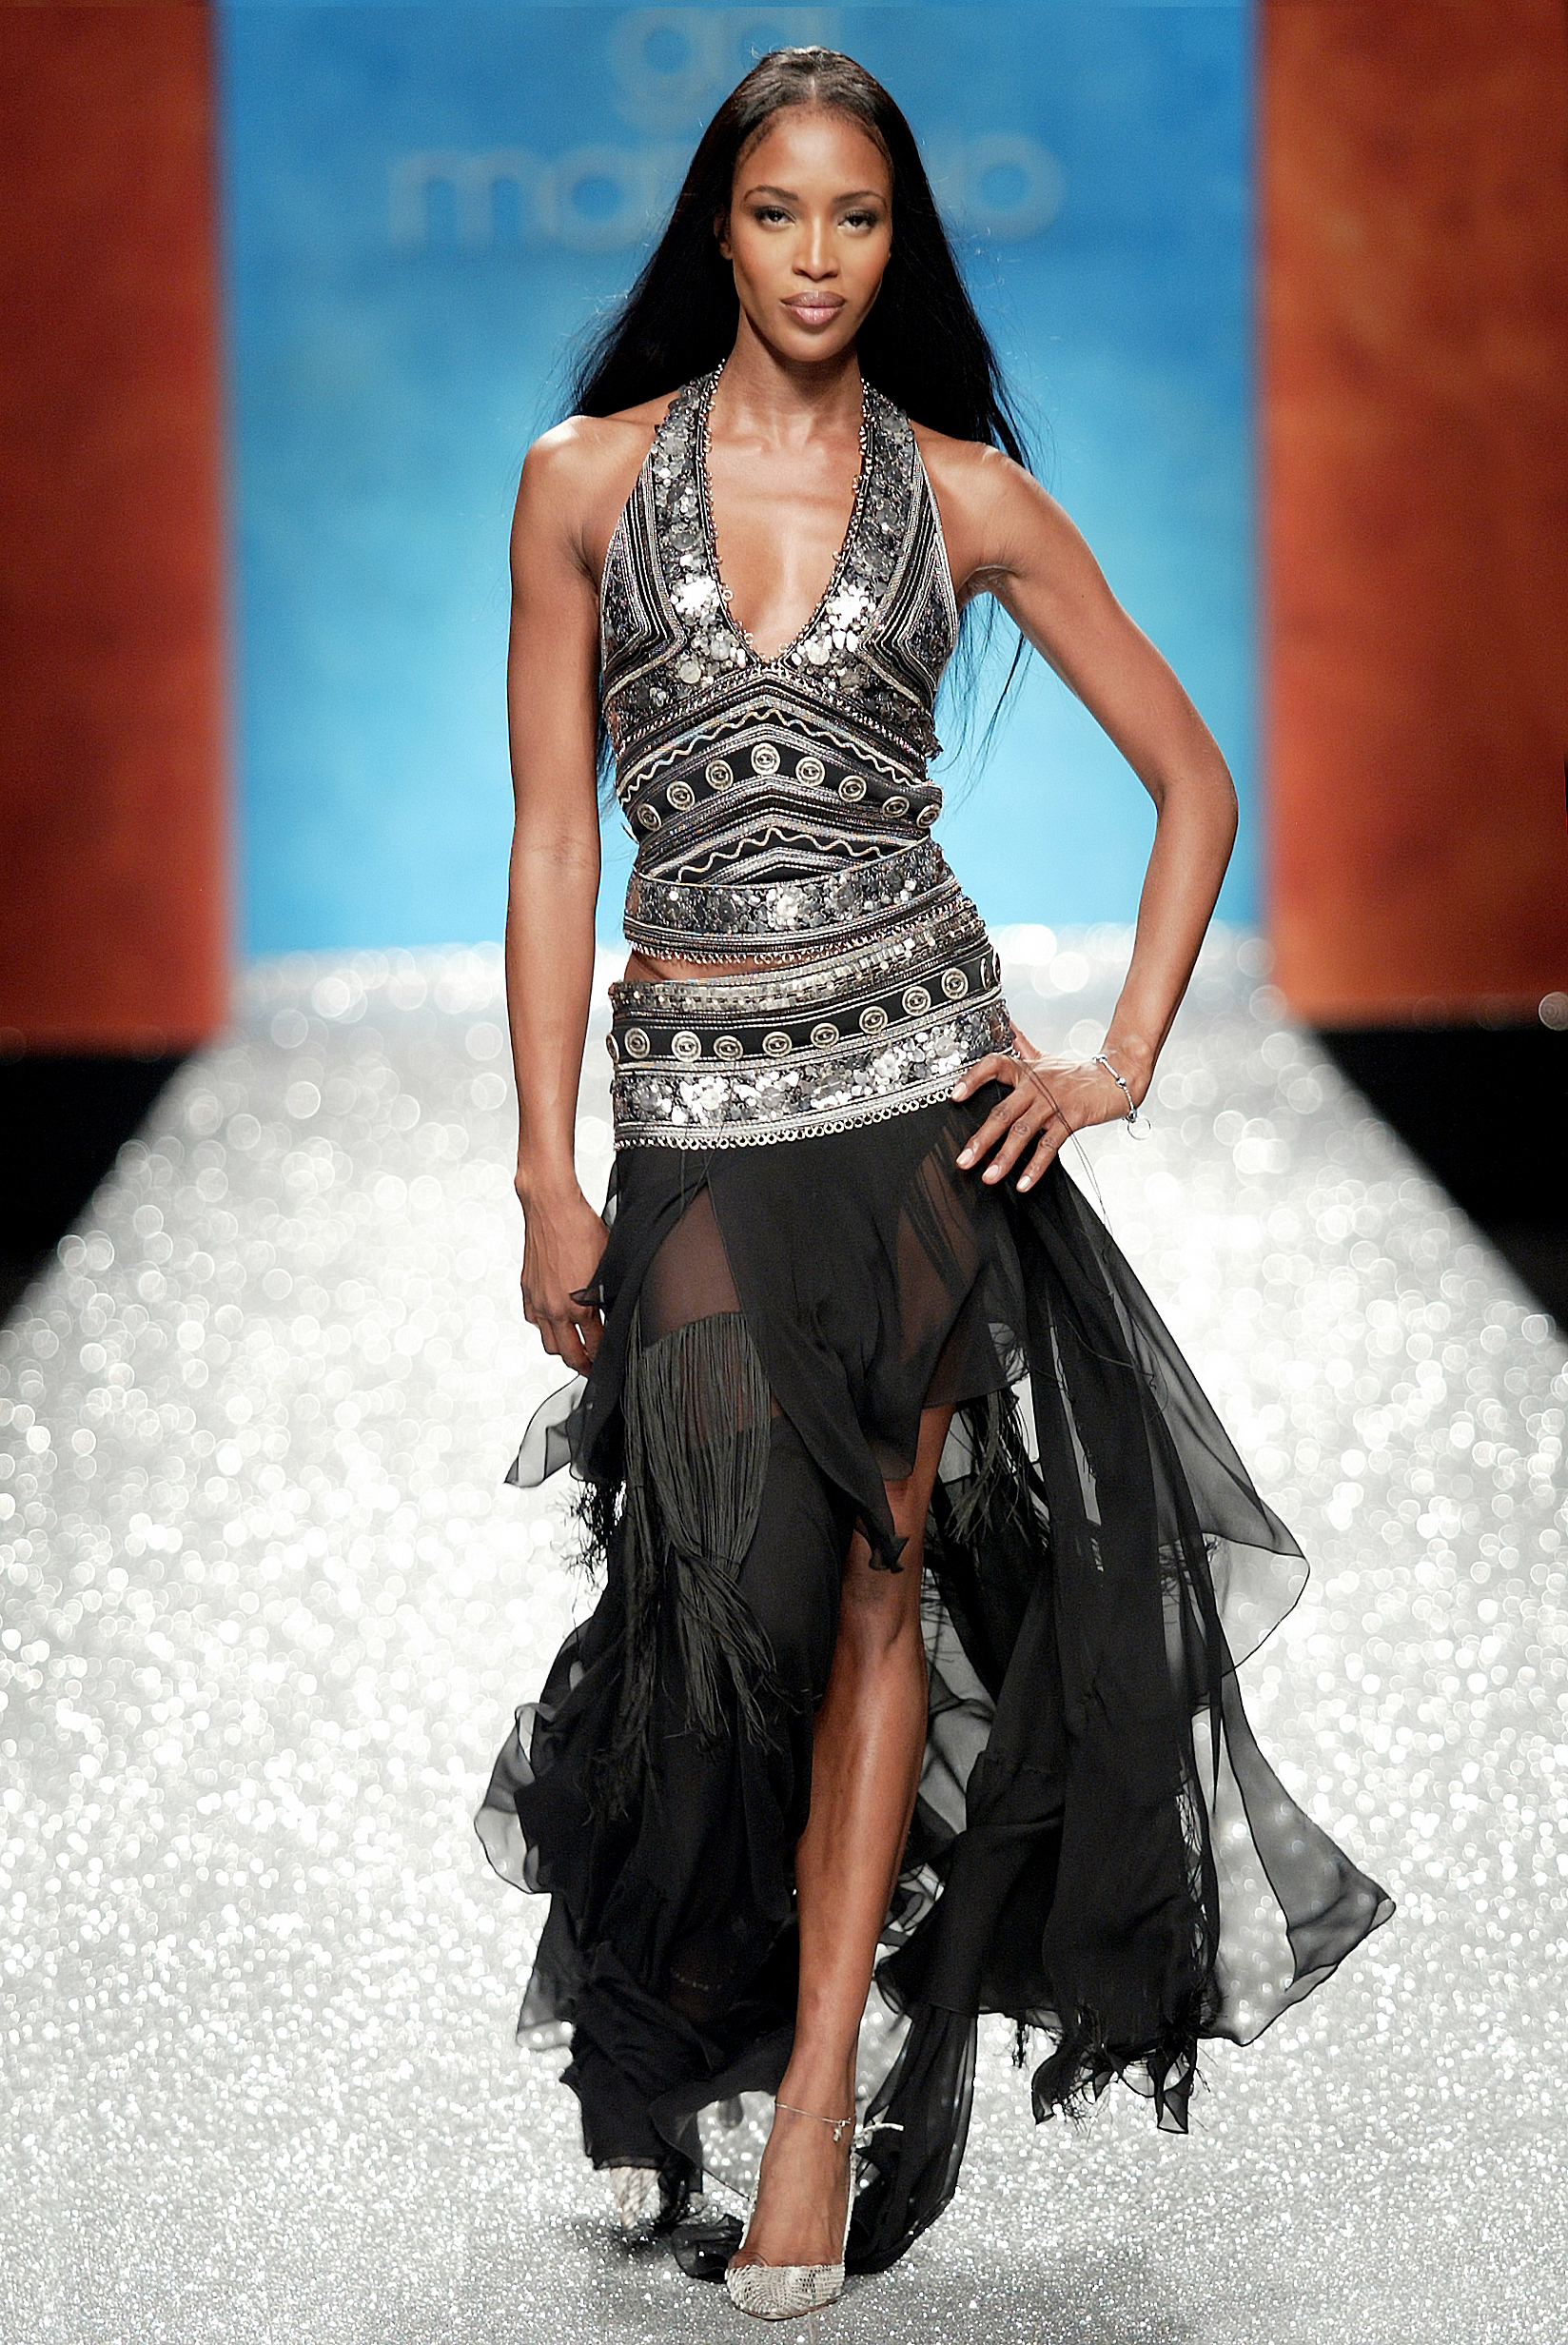 Naomi Campbell in Gai Mattiolo primavera-estate catwalk